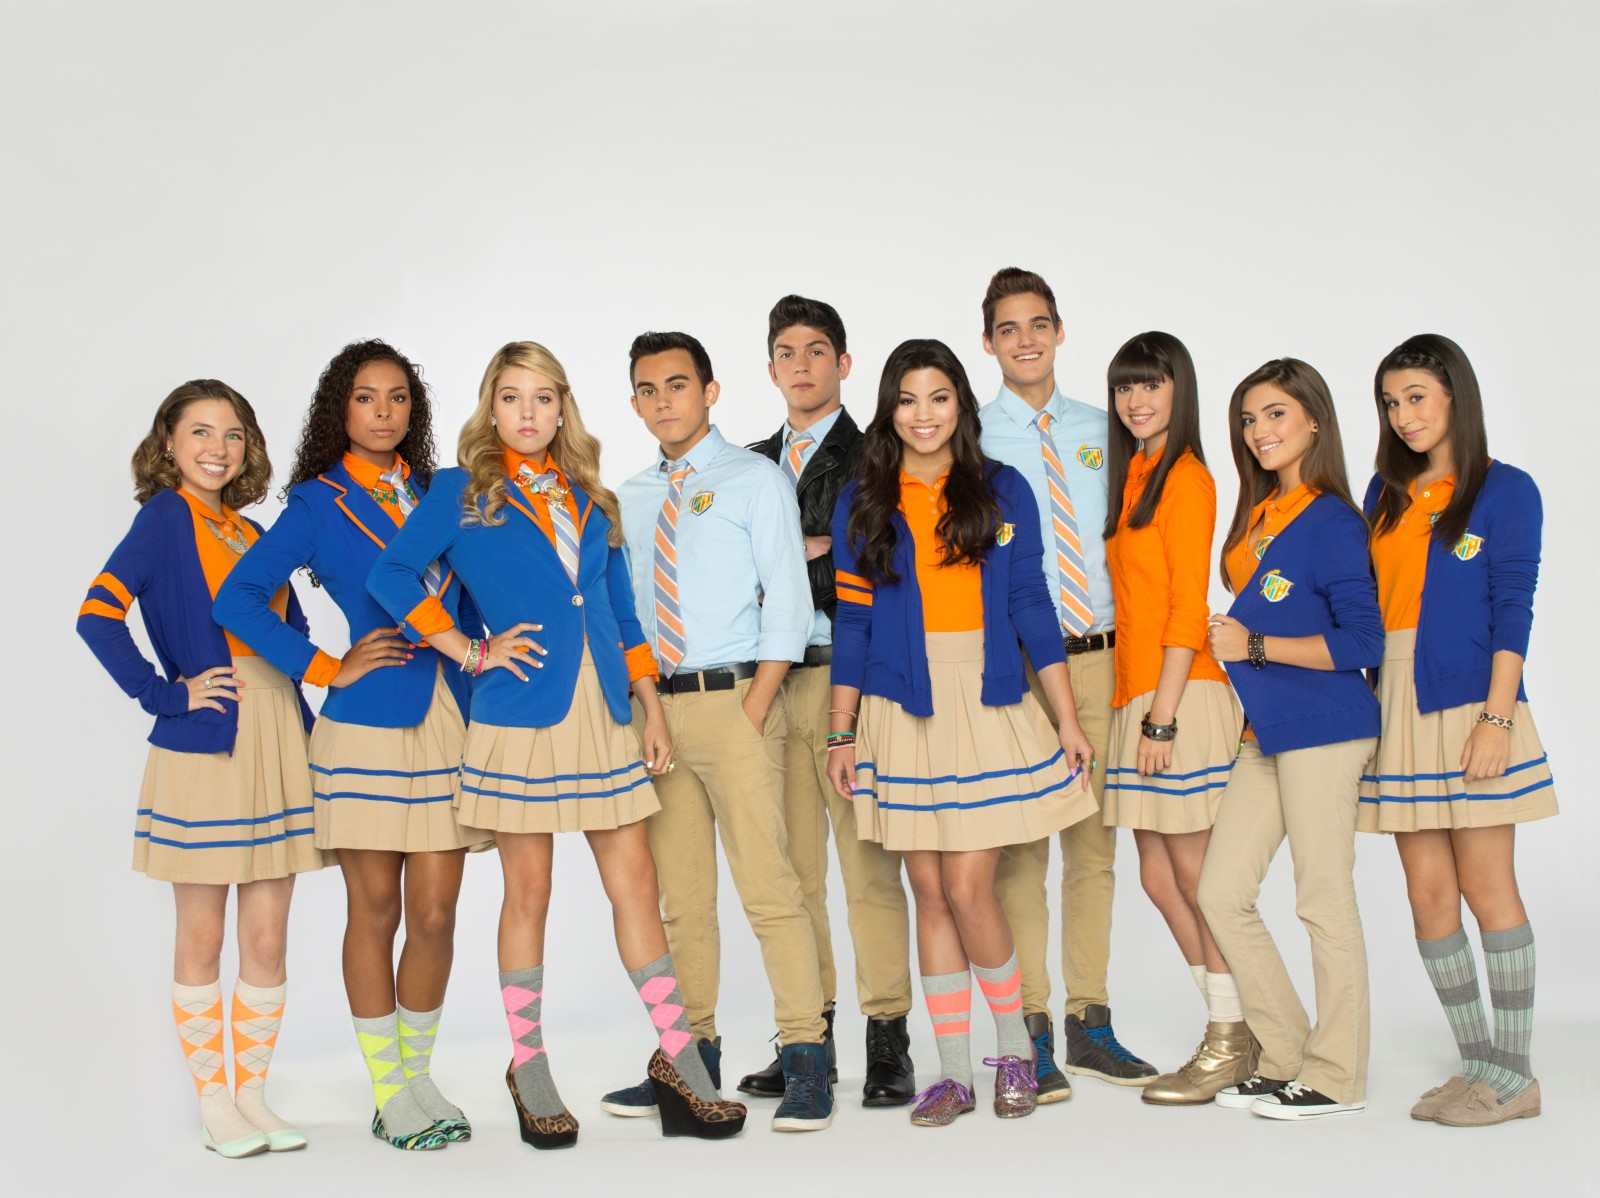 Every Witch Way Weekend